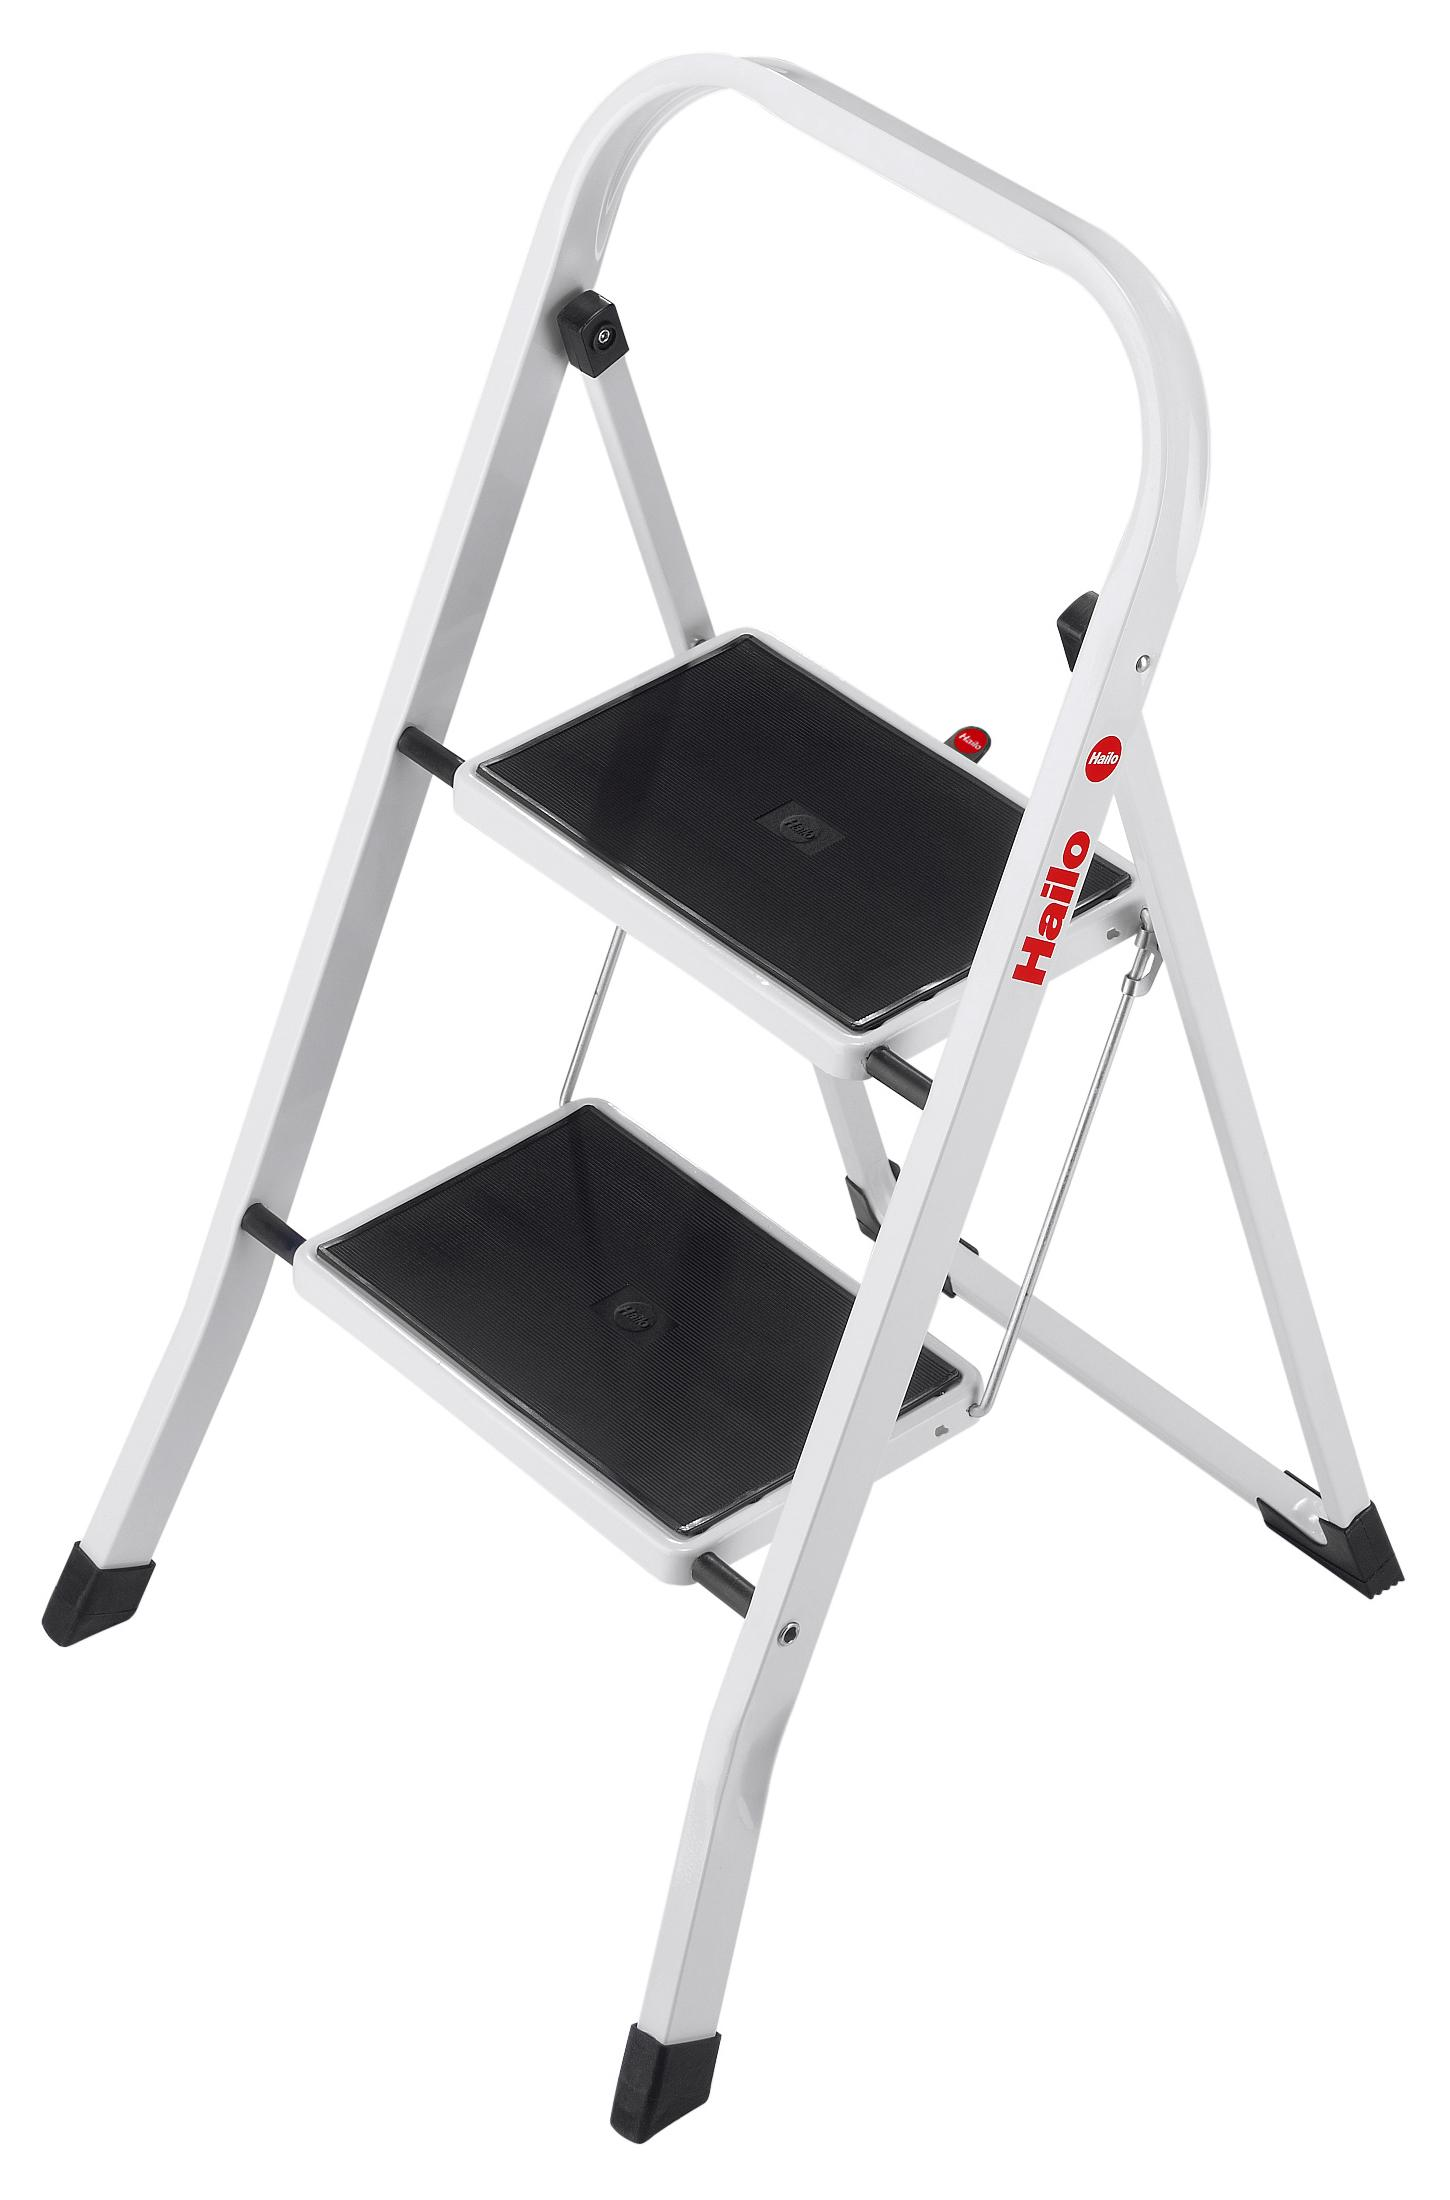 Hailo K20 Folding Ladder 2 to 3 Steps Sturdy/Stable/Steady Steel Step Stool